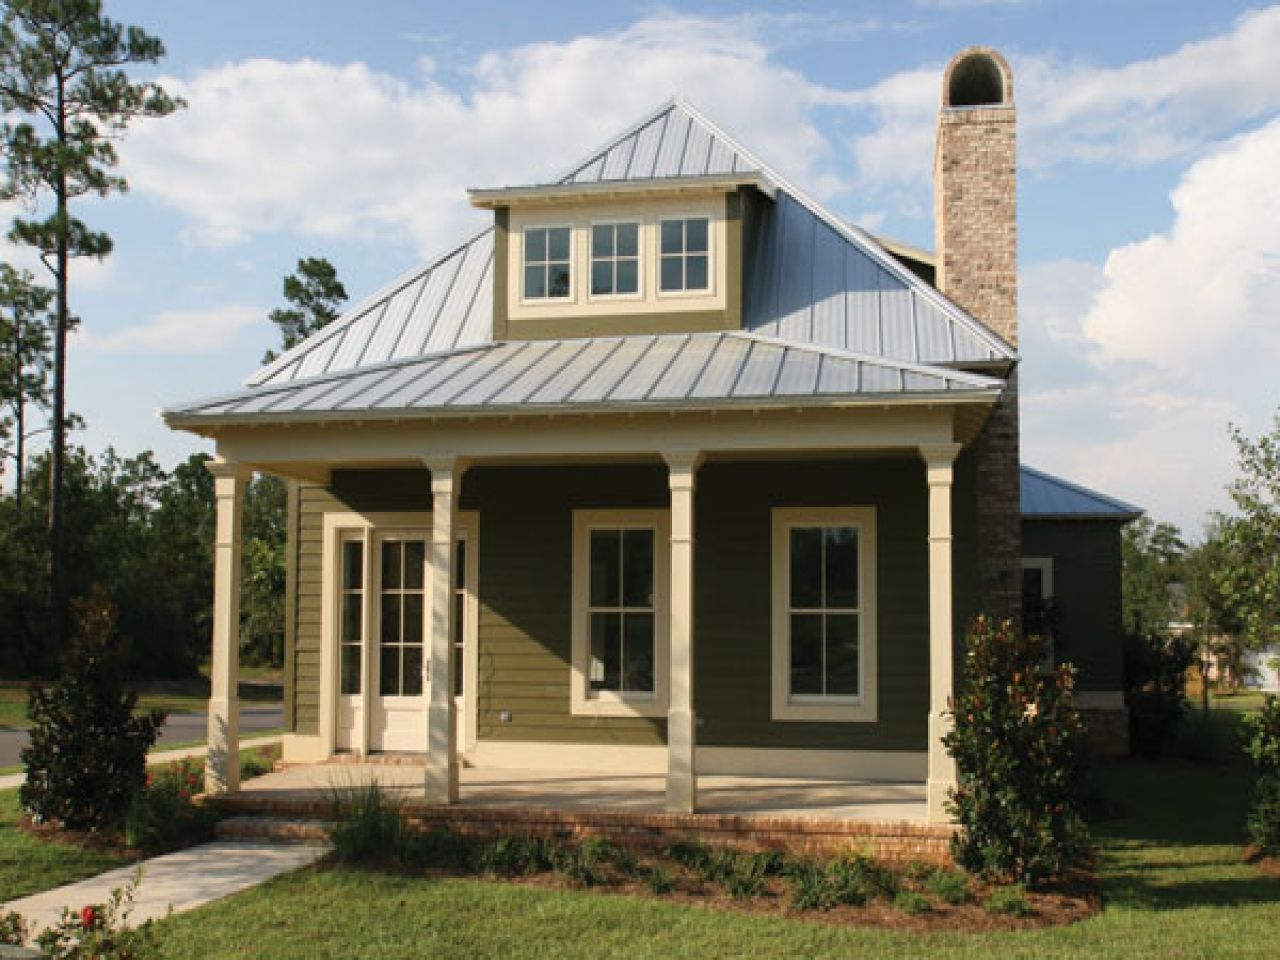 Small energy efficient home designs solar energy efficient home designs top home plans - Eight energy efficient home design ideas ...